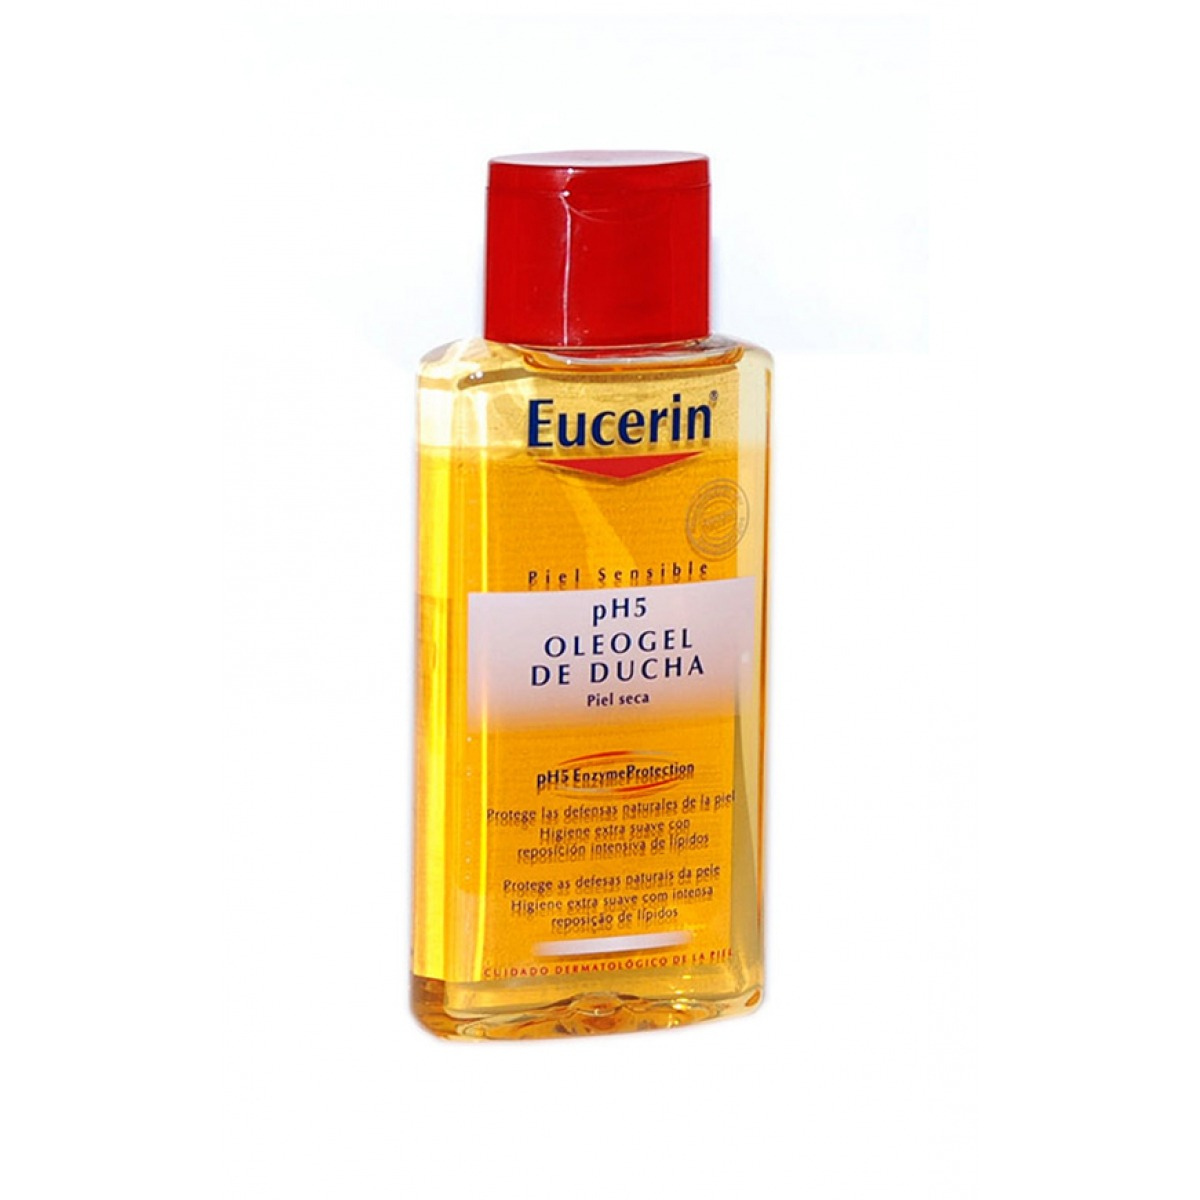 EUCERIN PH5 OLEOGEL DE DUCHA 200ML